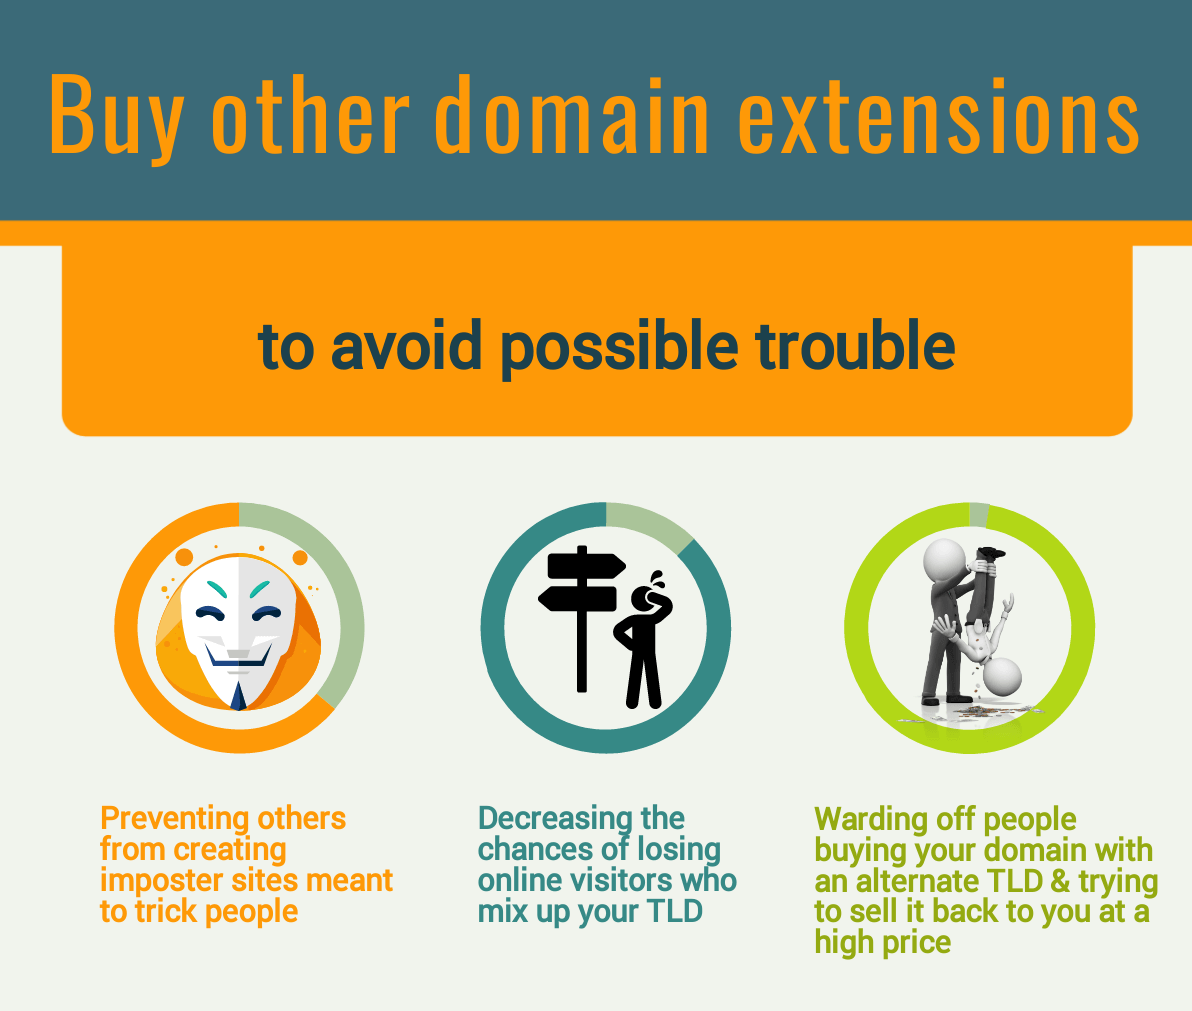 Buying other domain extensions can avoid possible trouble